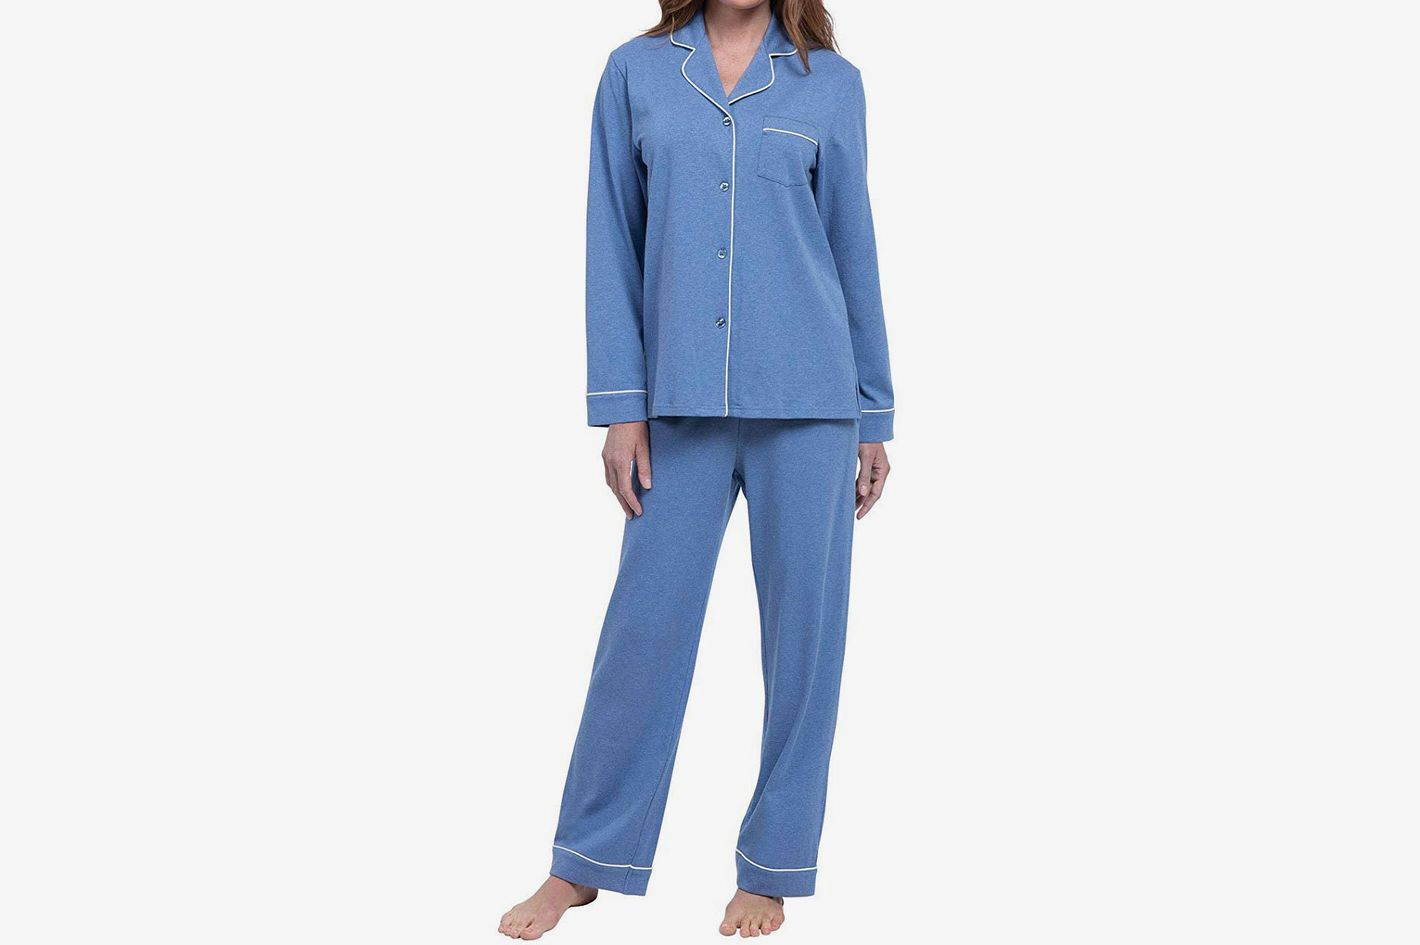 8508e63611 PajamaGram Pajamas for Women - Cotton Jersey Womens Pajamas